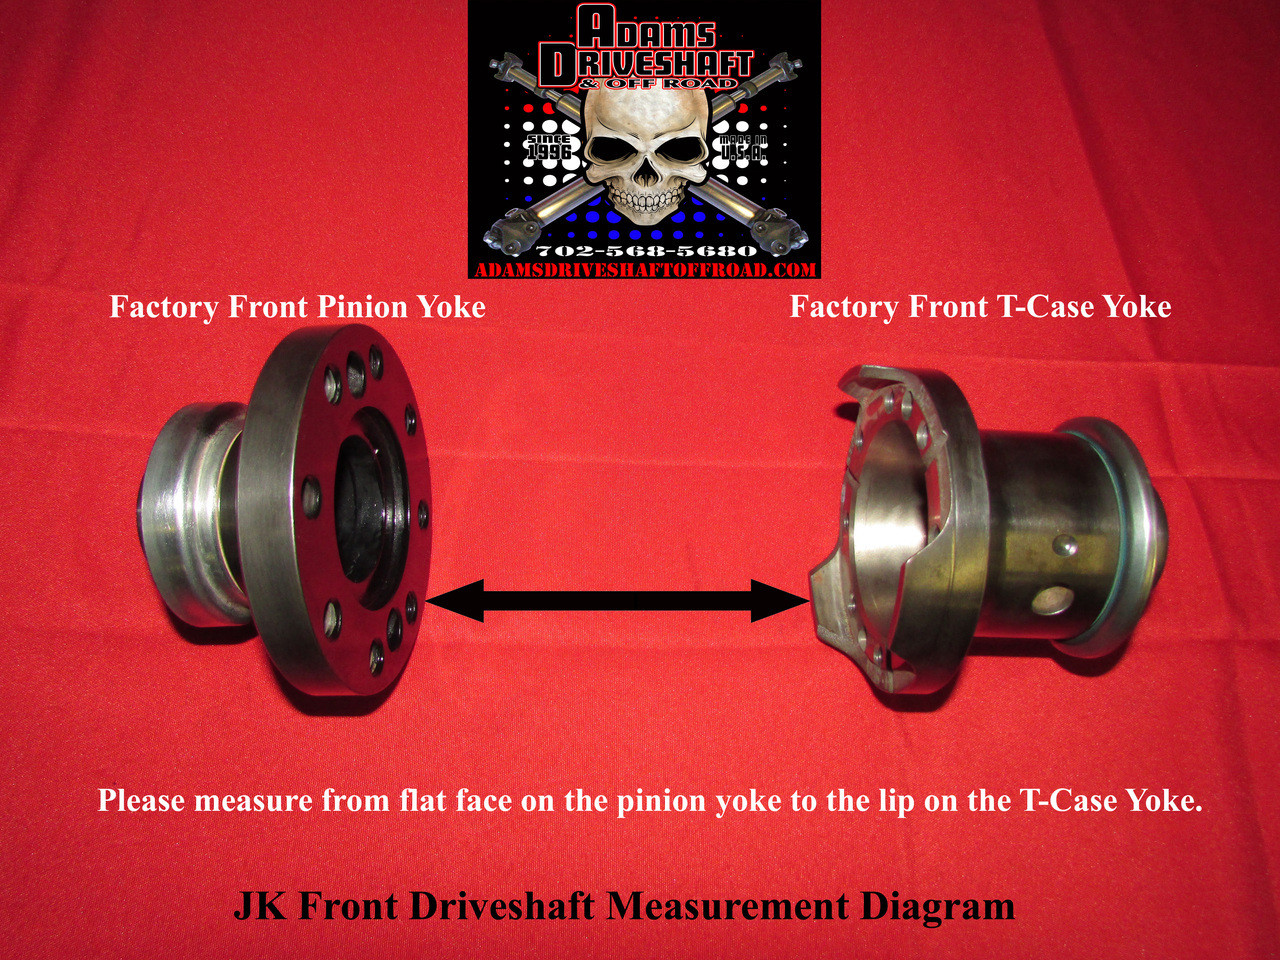 Driveshaft Measurement Required